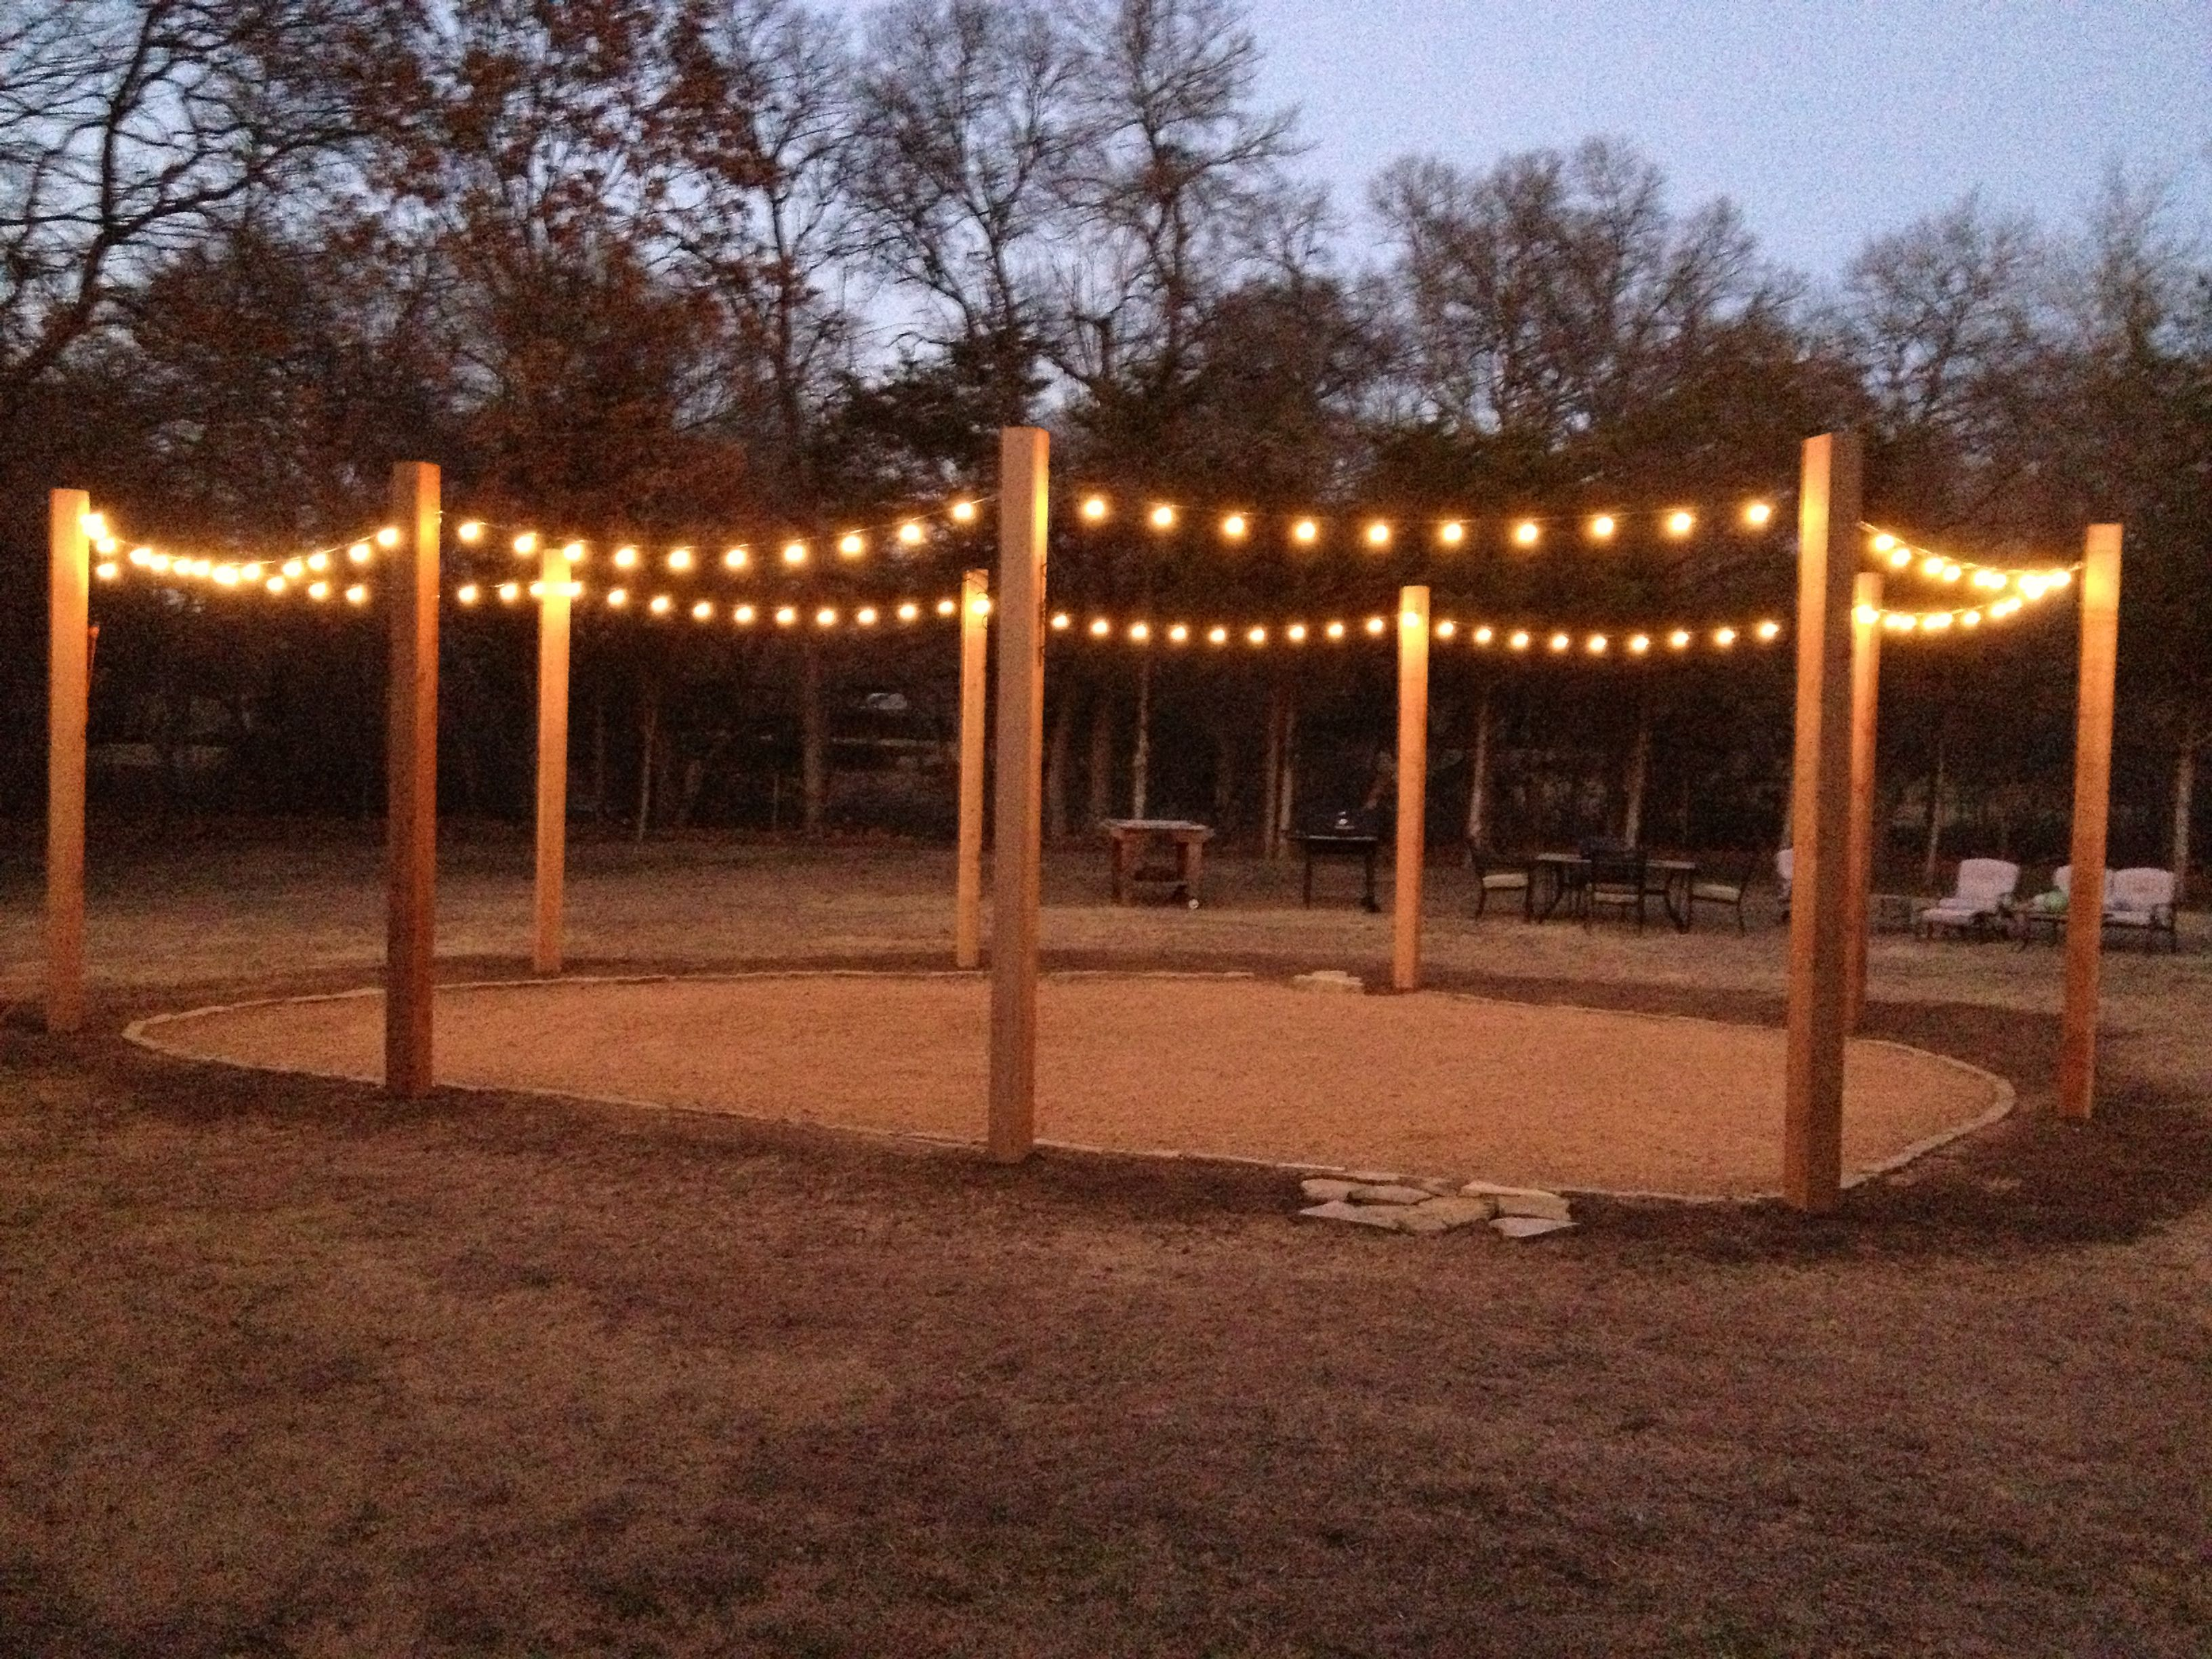 6x6x12 Cedar Posts Turned Into Our String Light Patio